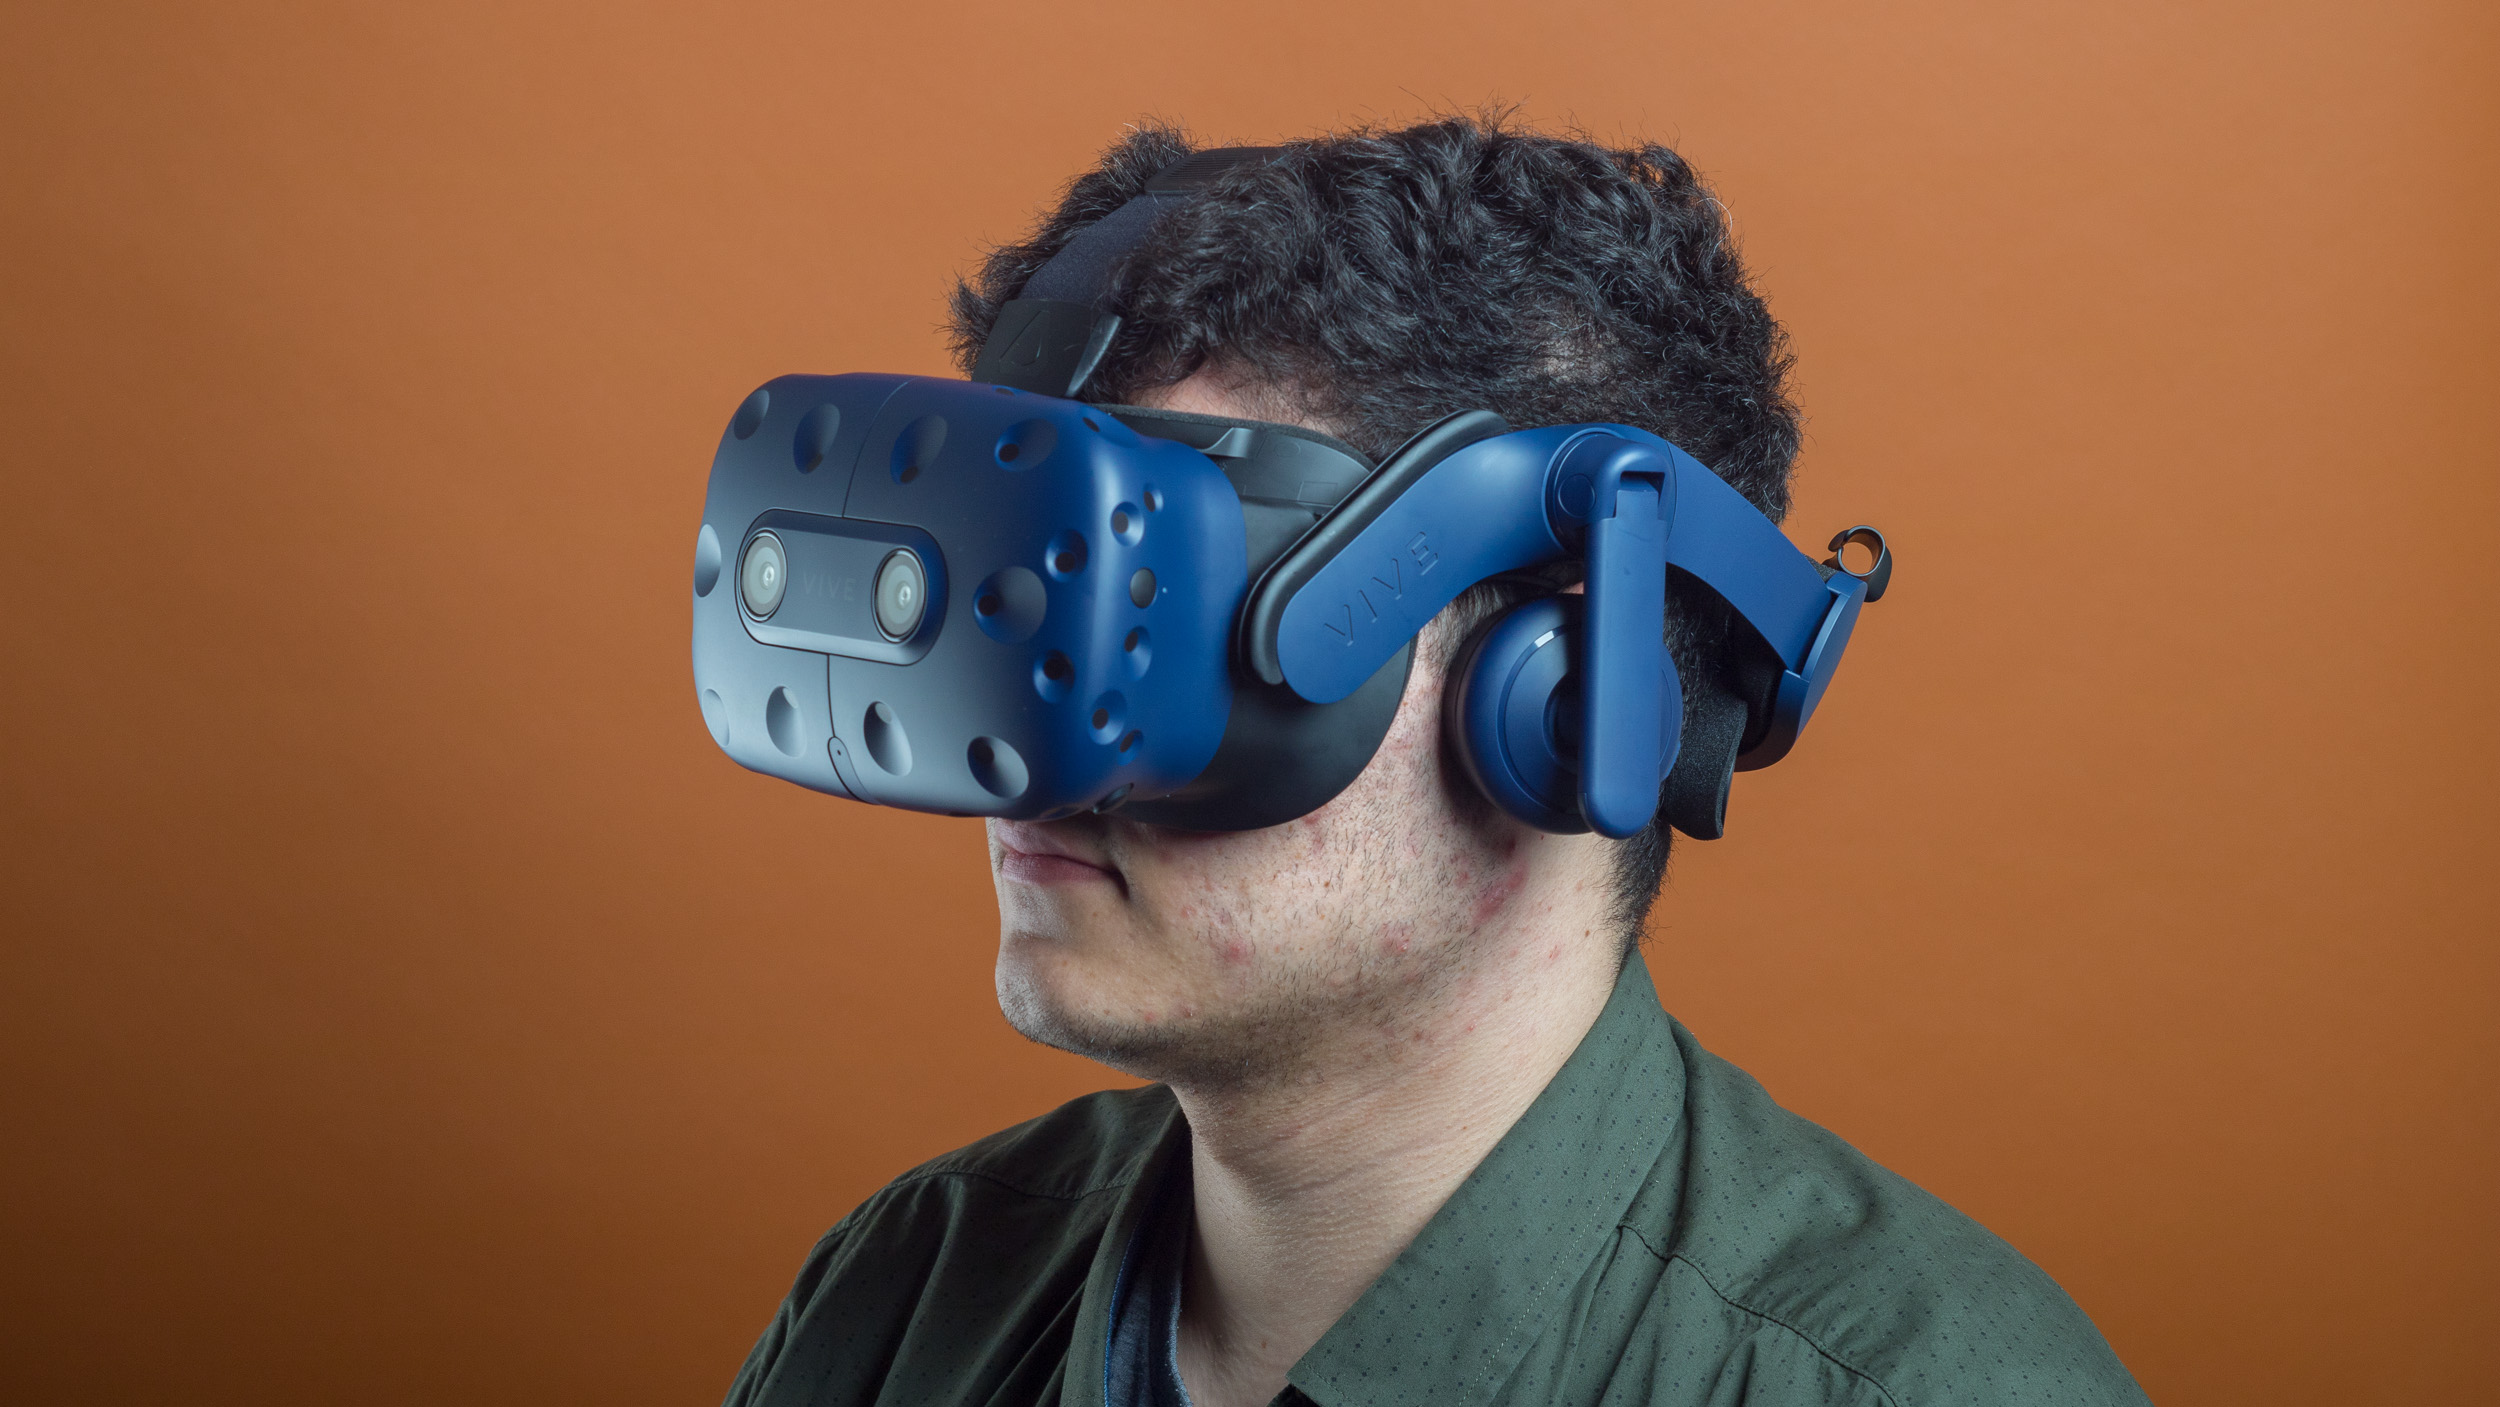 Htc Vive System Requirements >> HTC Vive Pro review: Augmented reality is coming to 2018's ...